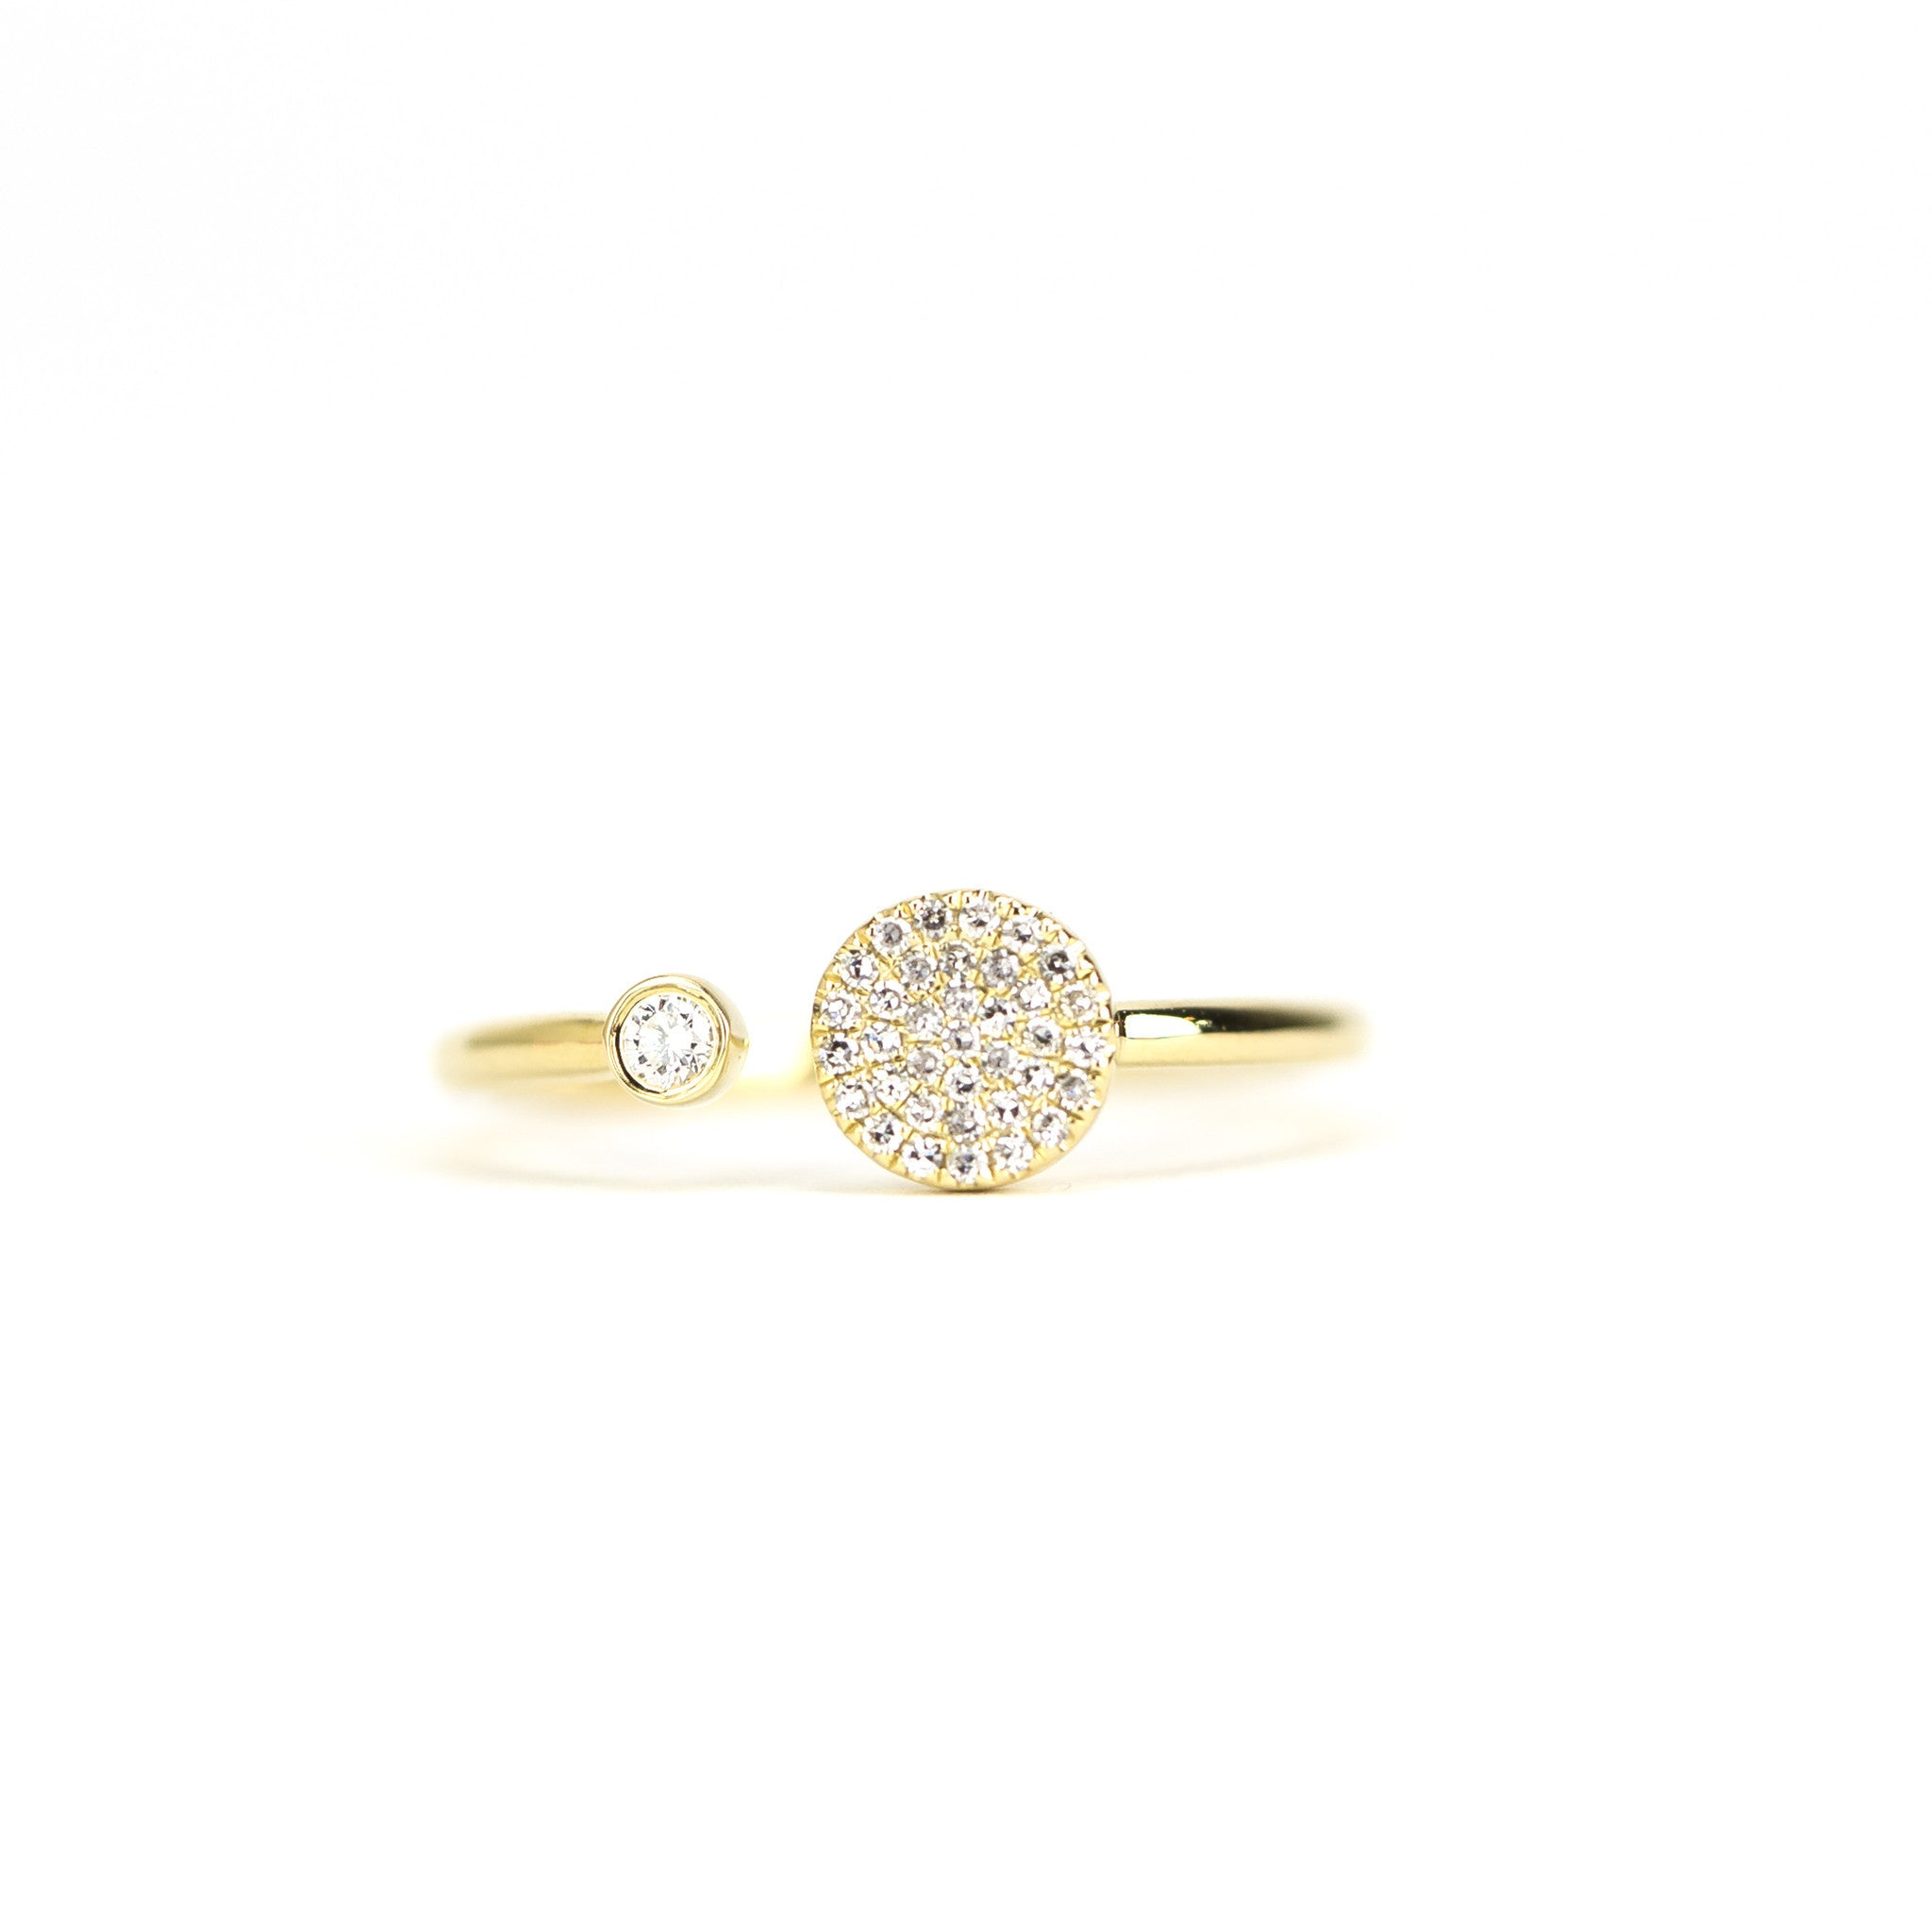 Duo Disc Ring with Bezel Set Diamond by Atheria Jewelry